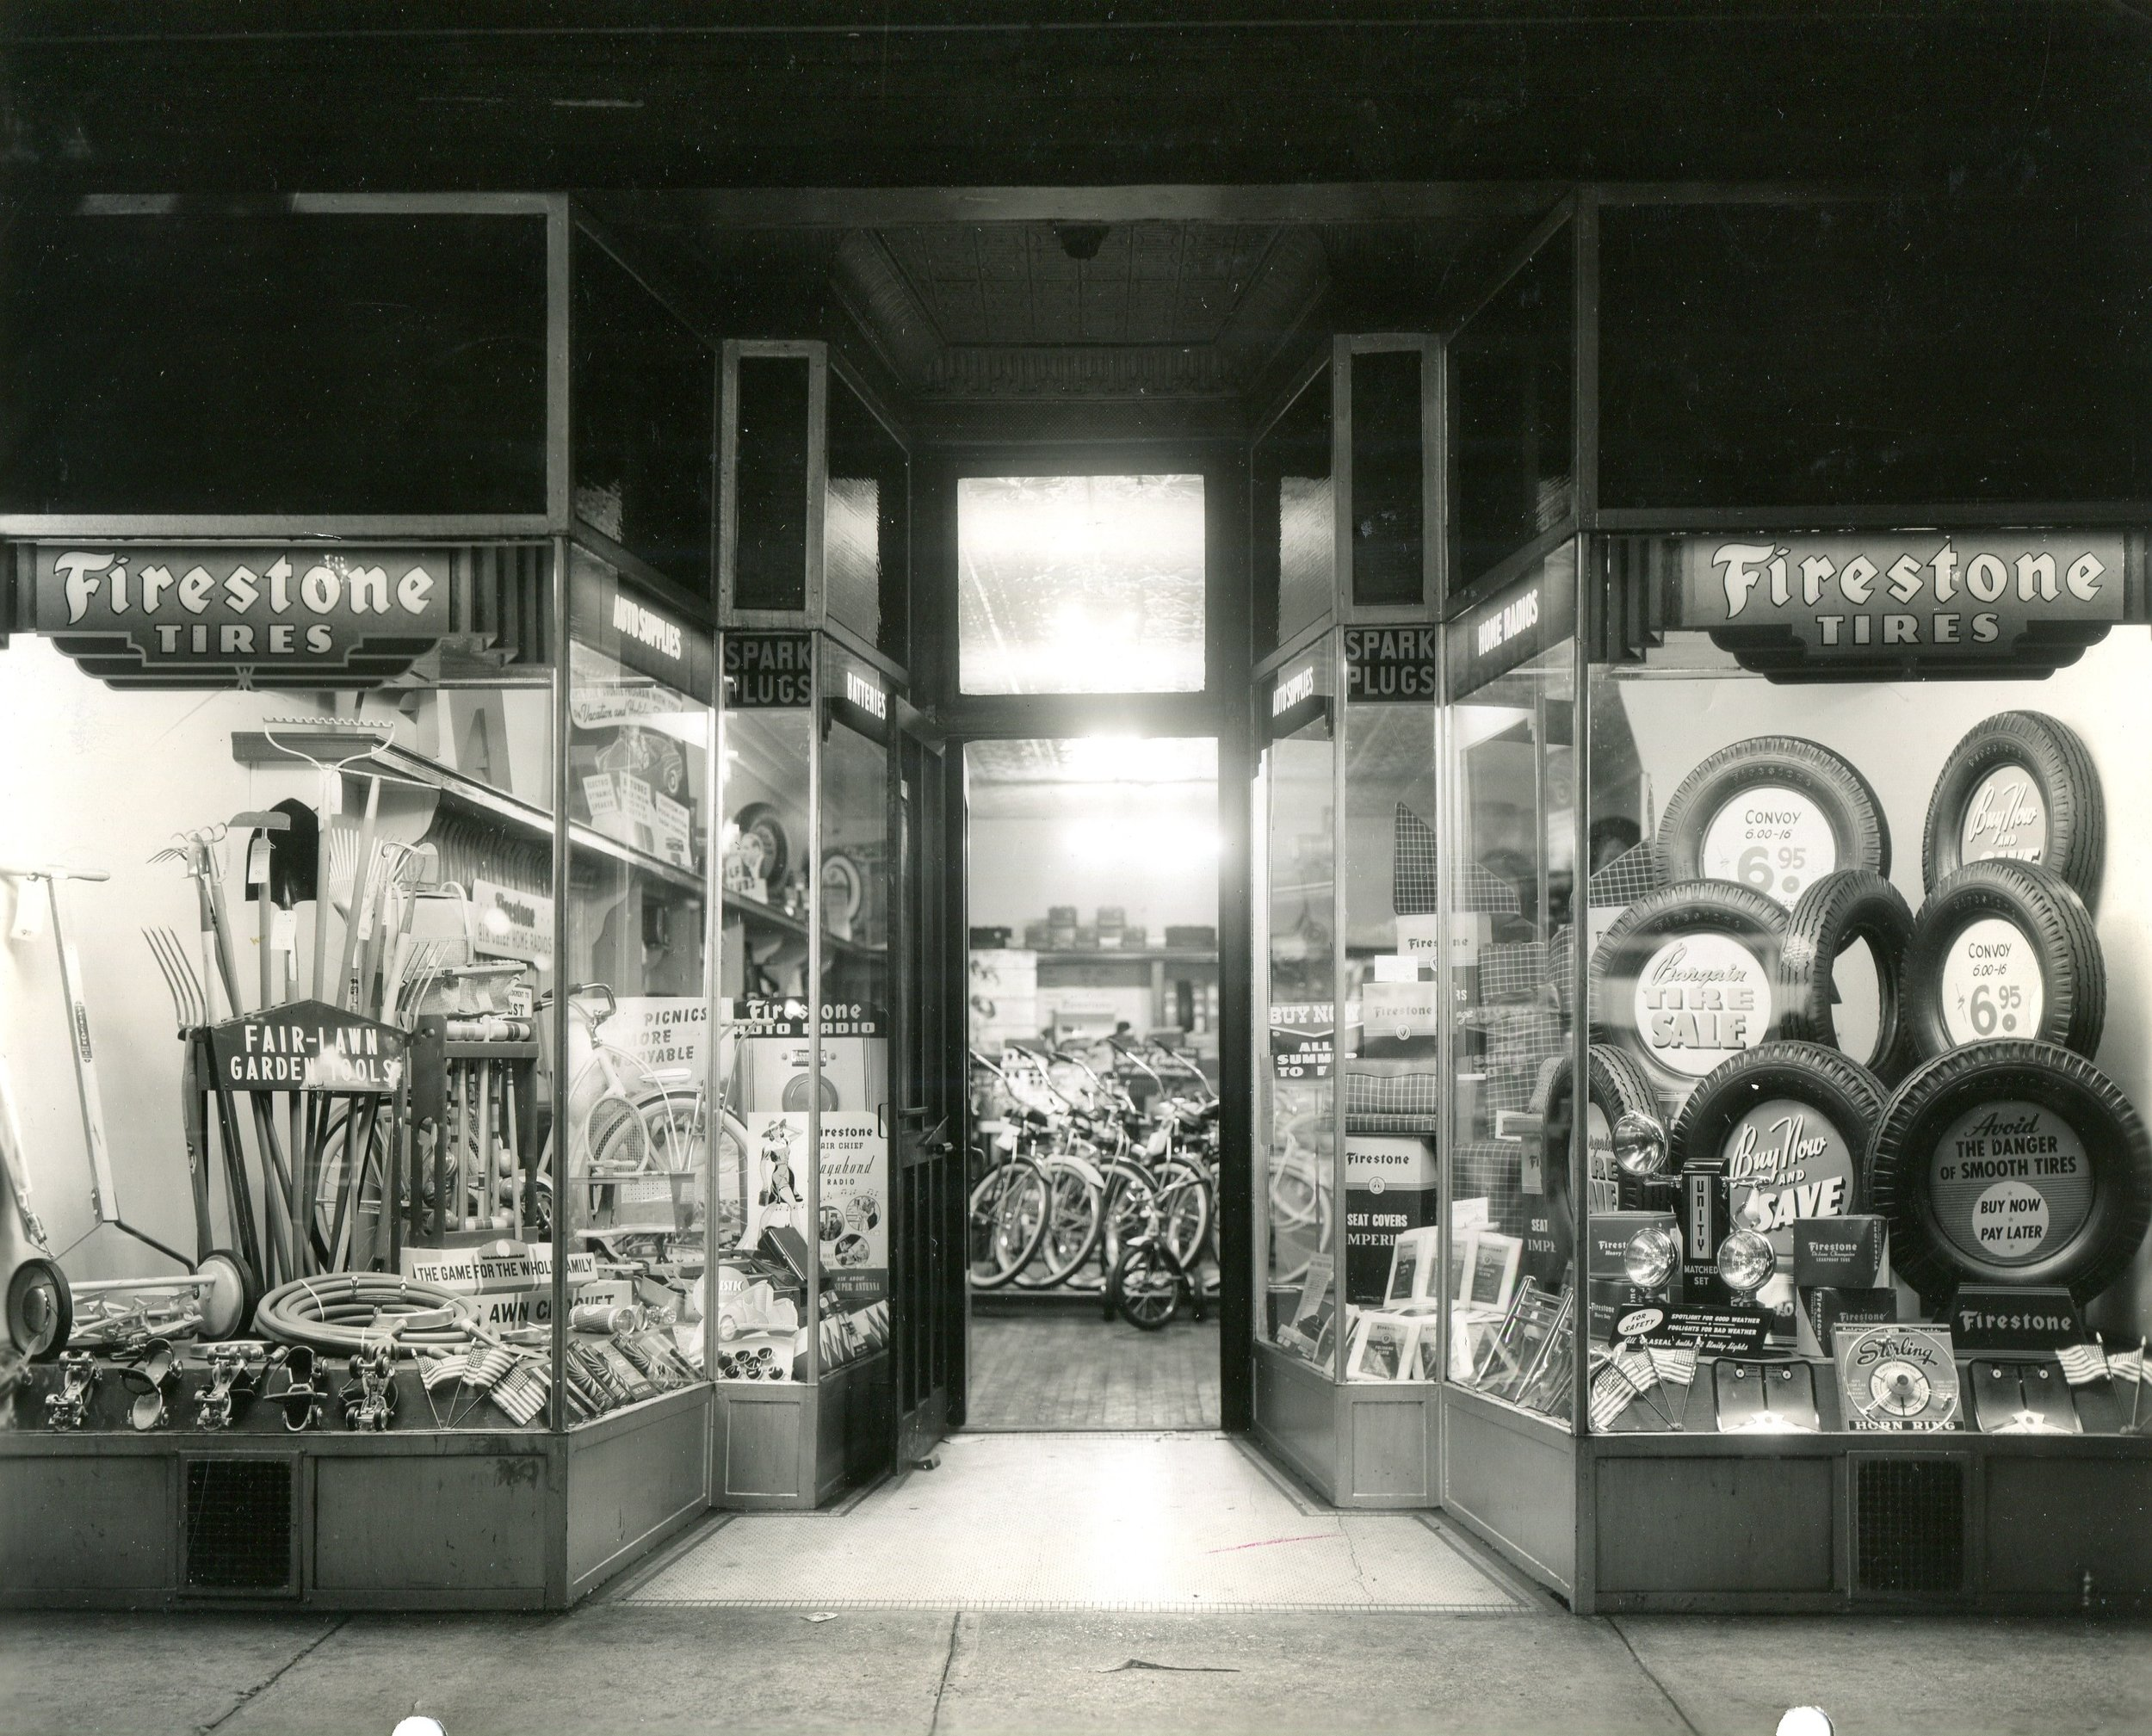 Neal Price's Firestone Store sold tires for your car, garden tools, bicycles, phonography records, and much more at its location ay 1309 119th Street. This photo is from 1957. (Elsie Boness photograph)